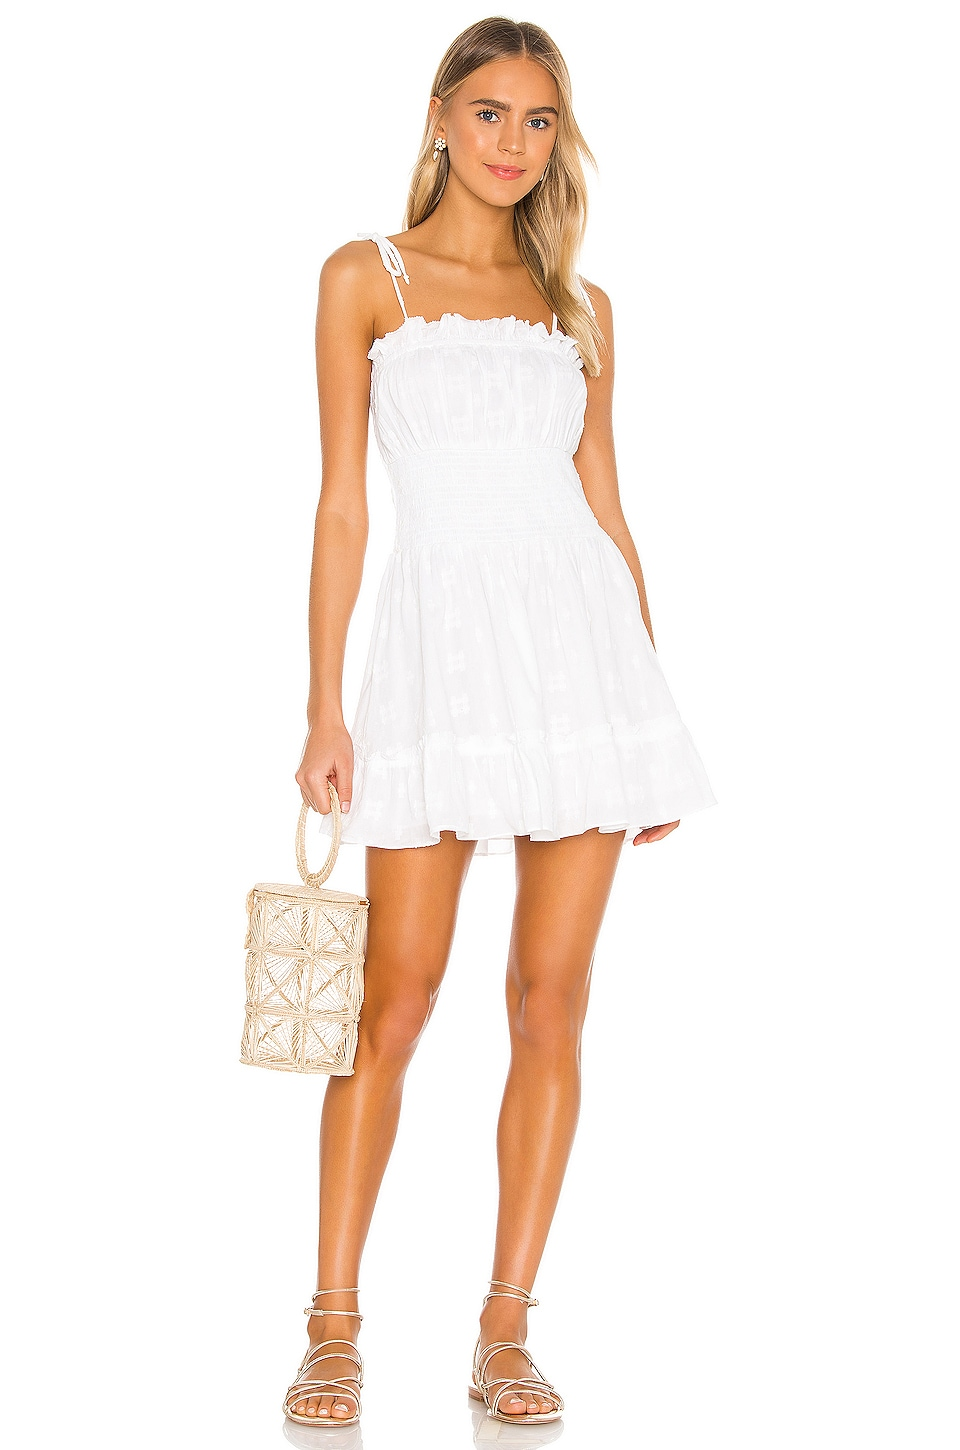 Marrakesh Mini Dress             Cleobella                                                                                                       CA$ 231.57 17